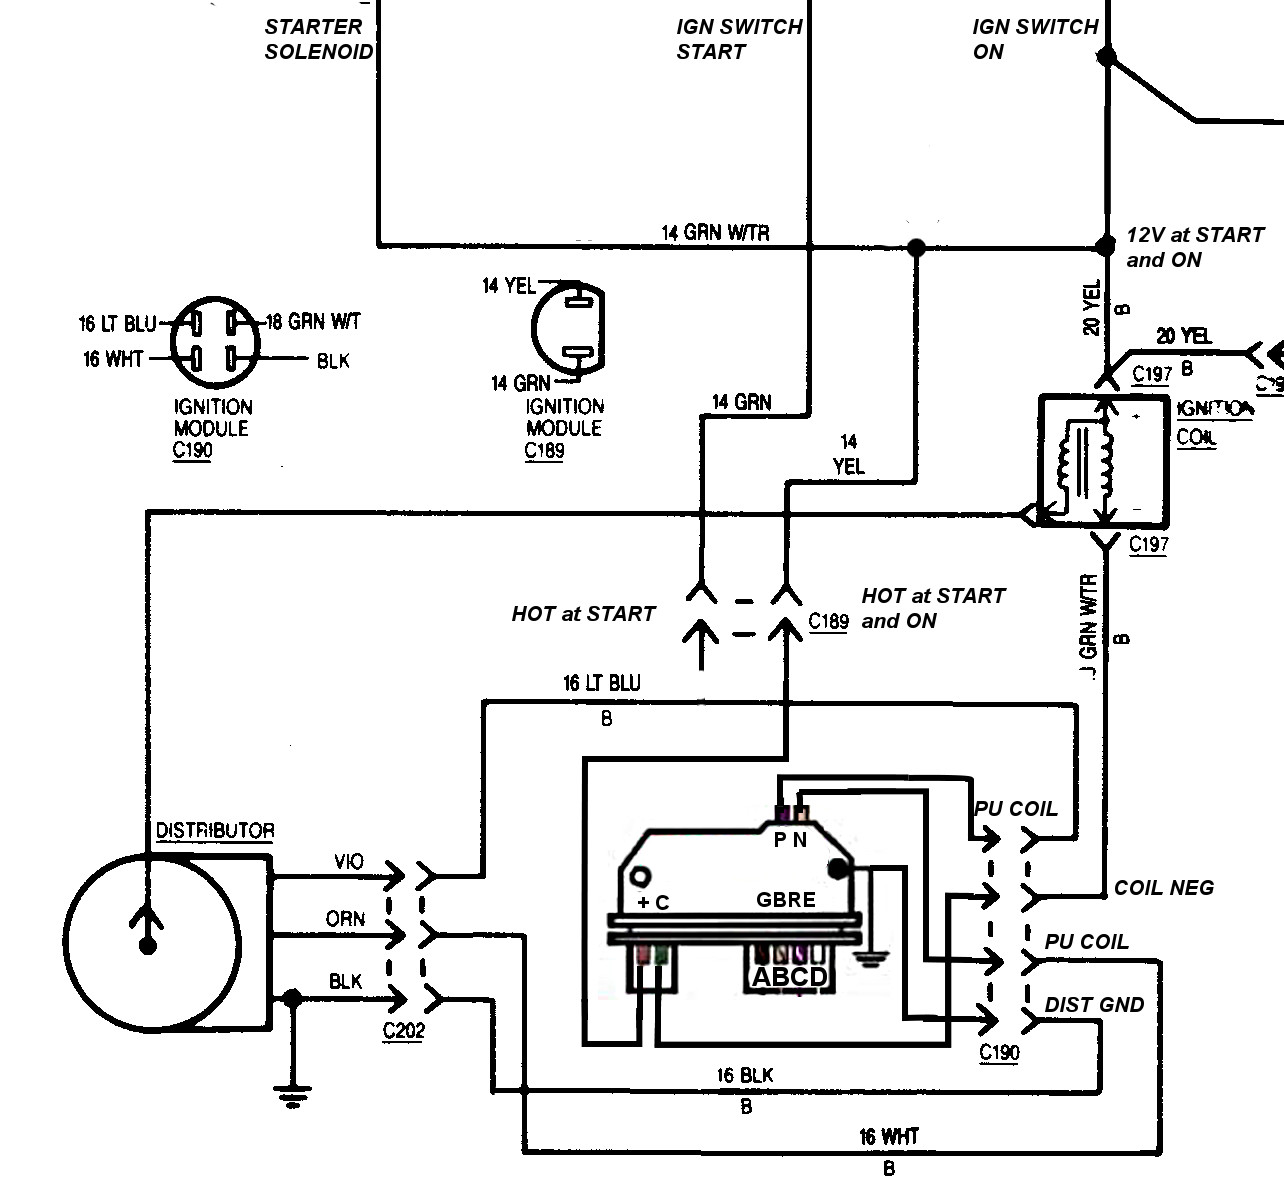 wrg 8765 datsun 620 wiring diagram for distributor ford duraspark ignition wiring diagram wiring diagram [ 1284 x 1178 Pixel ]